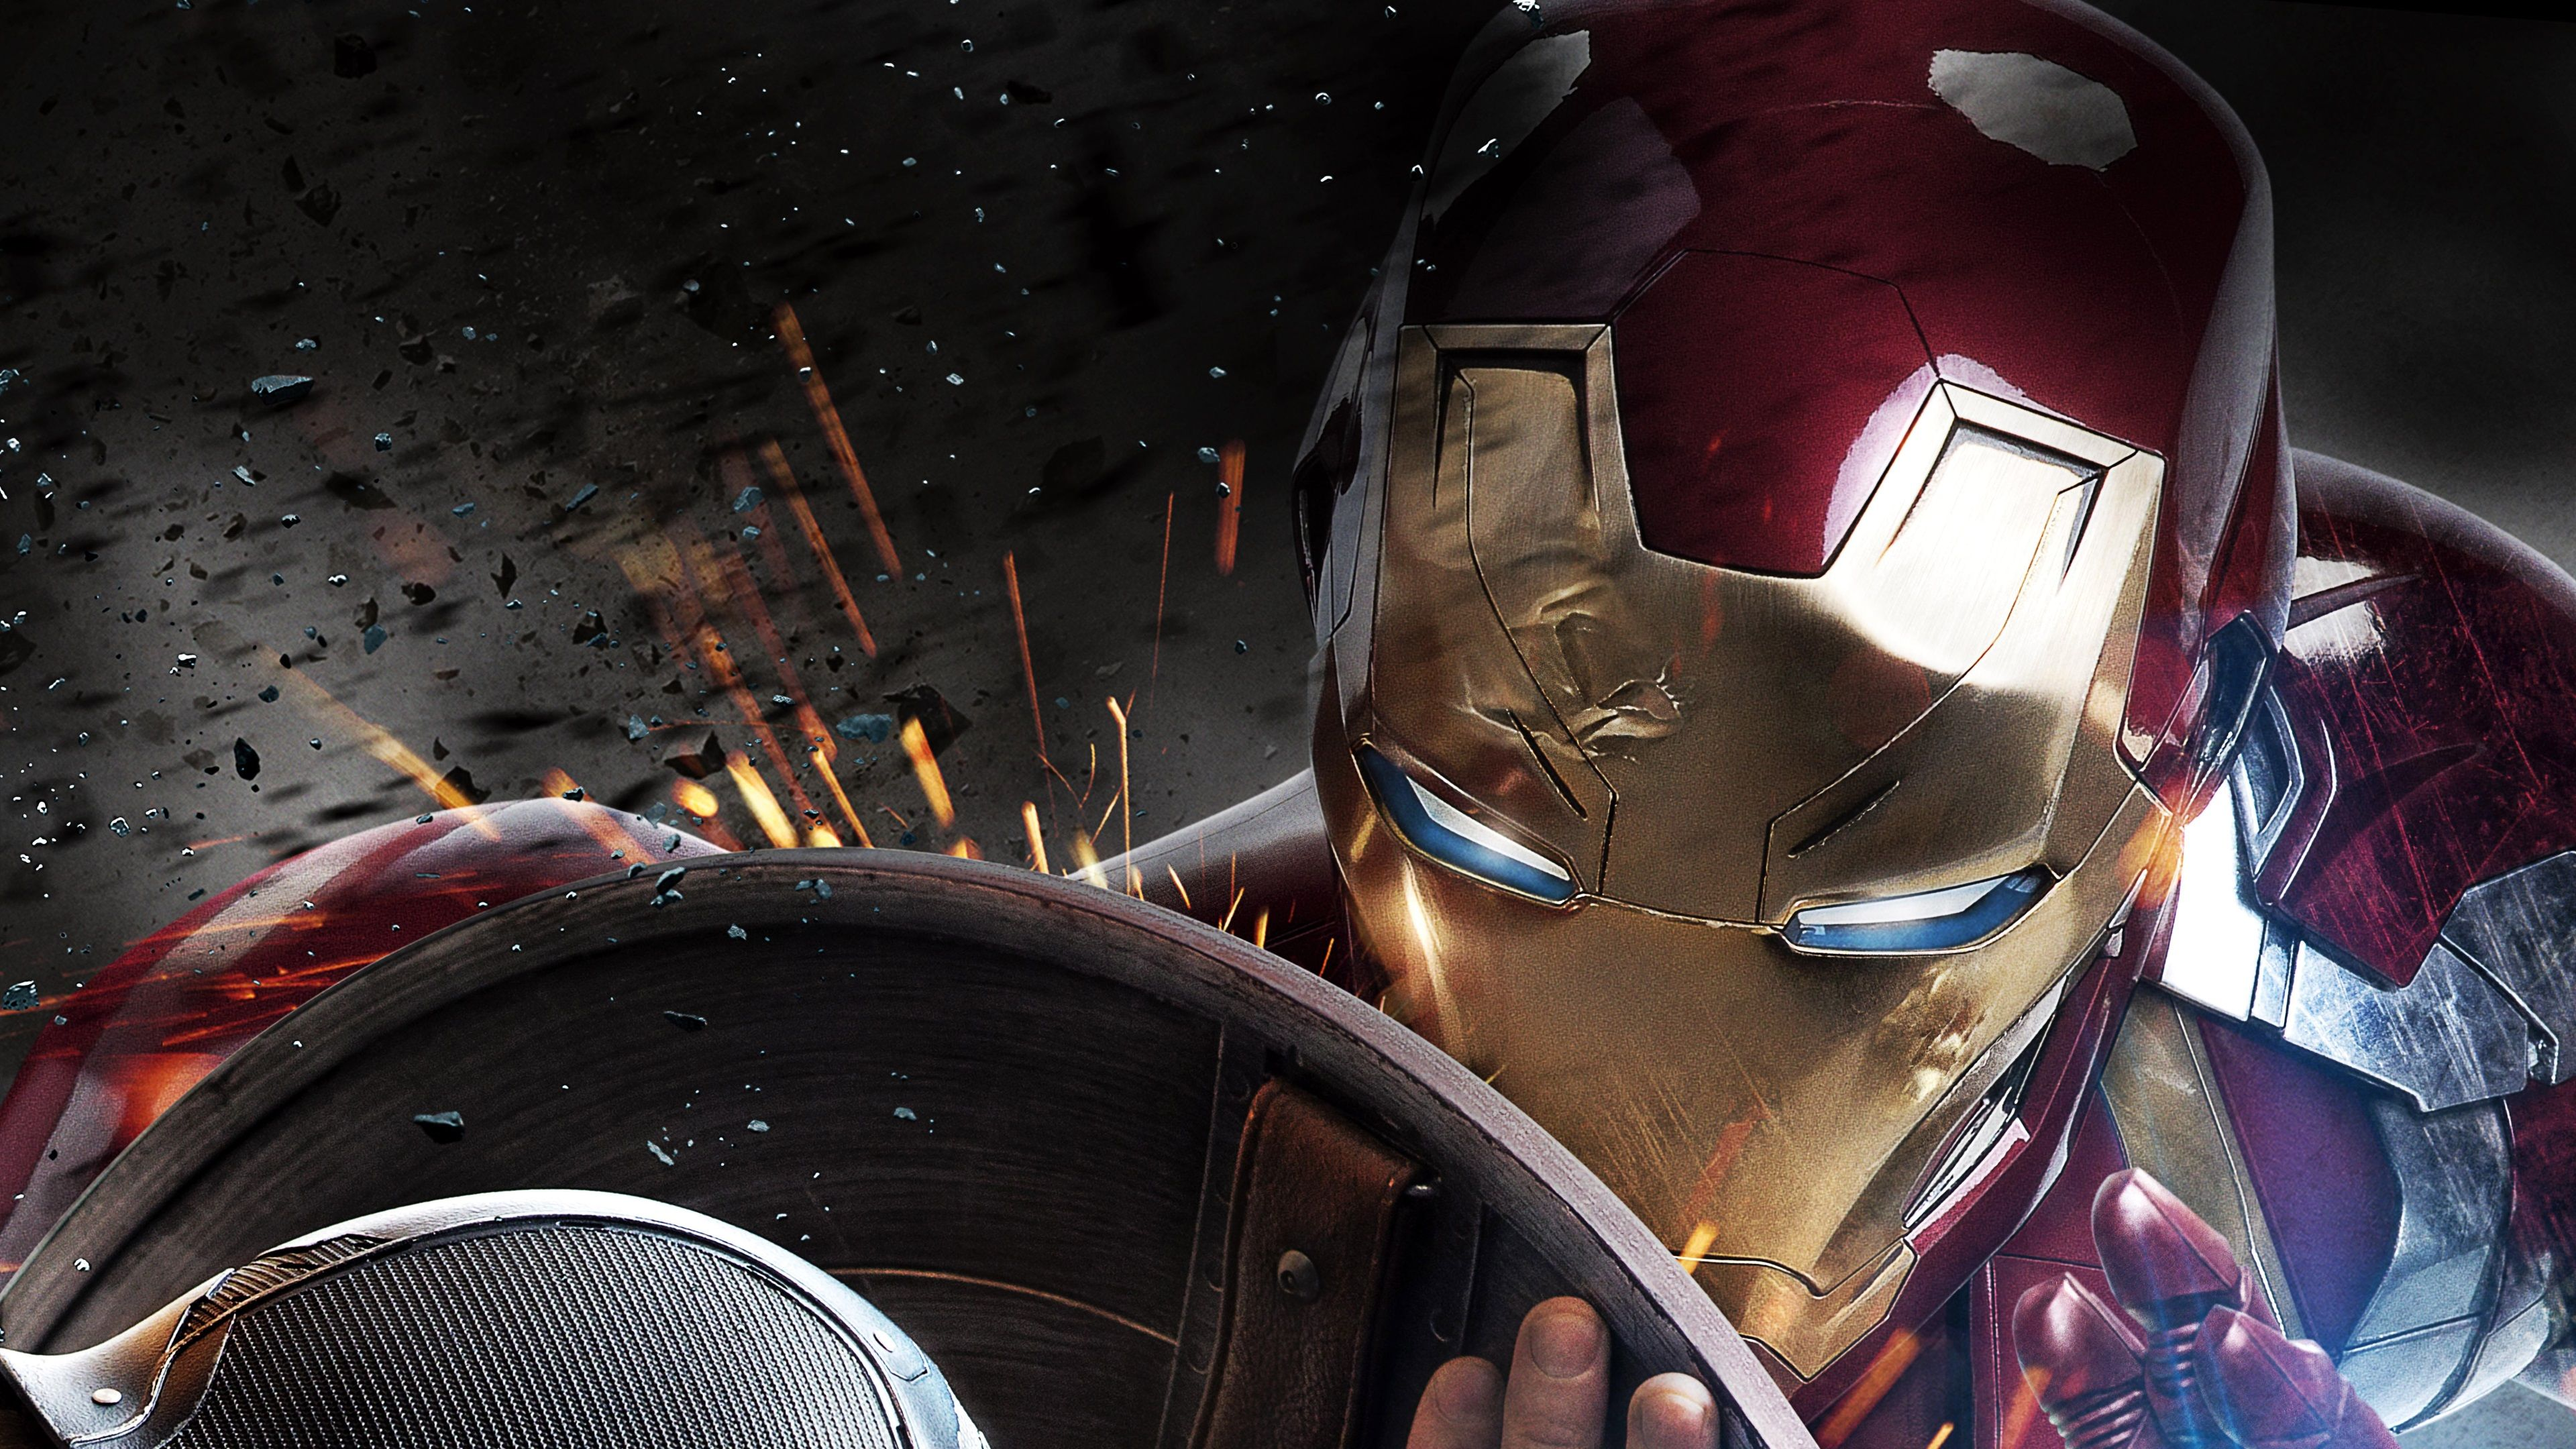 3840x2160 Iron Man 4k Wallpaper Download Hd For Pc Iron Man